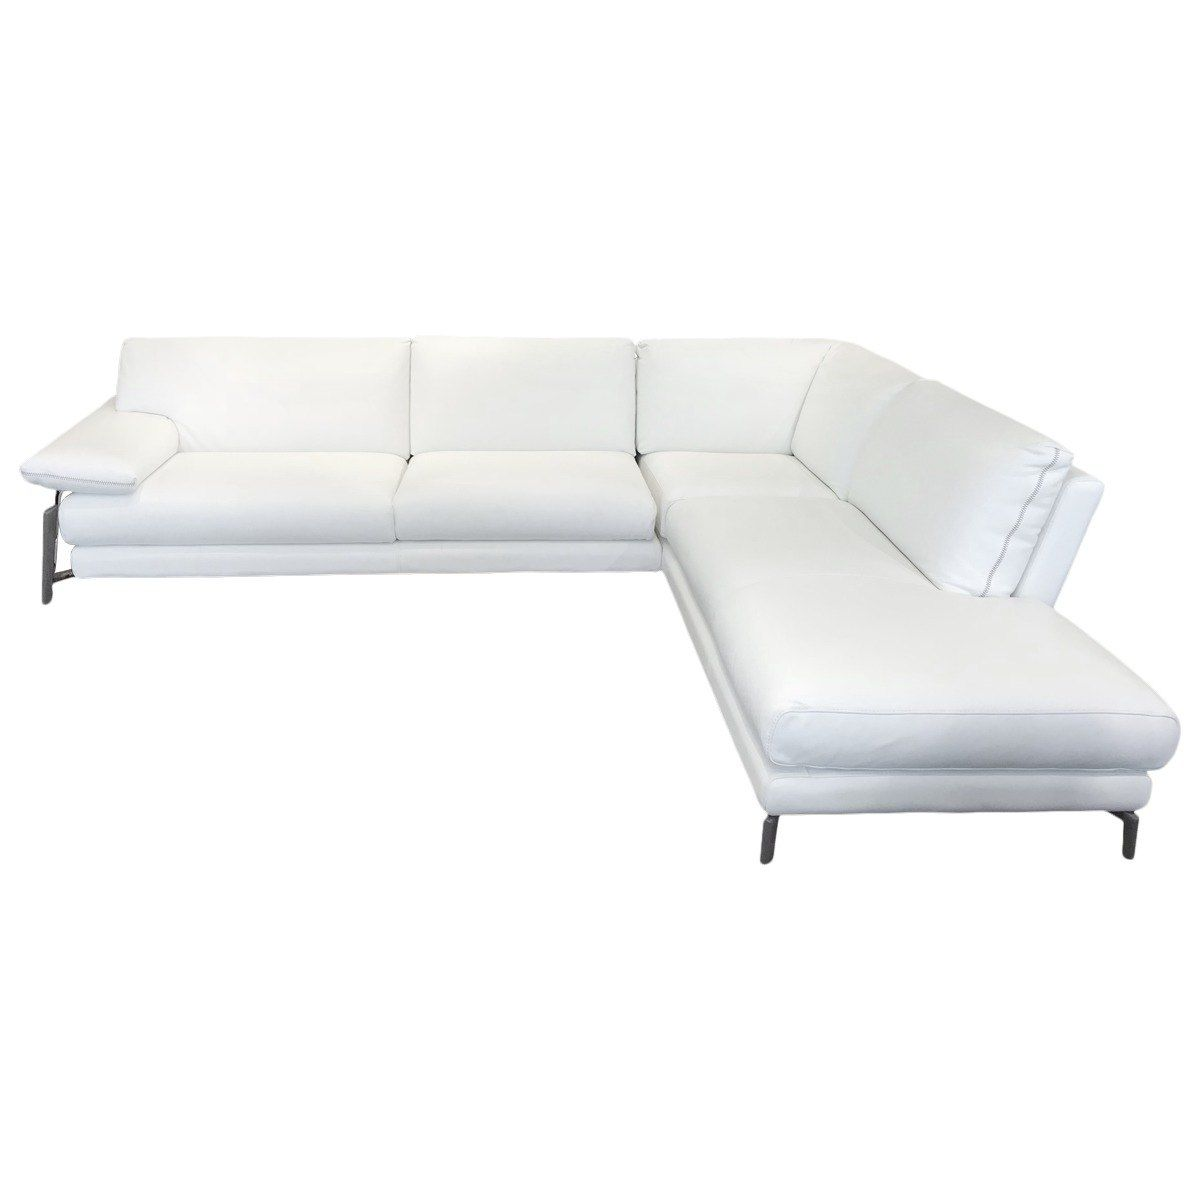 Wondrous Caractere Sectional In 2019 Winter White Sectional Sofa Gmtry Best Dining Table And Chair Ideas Images Gmtryco